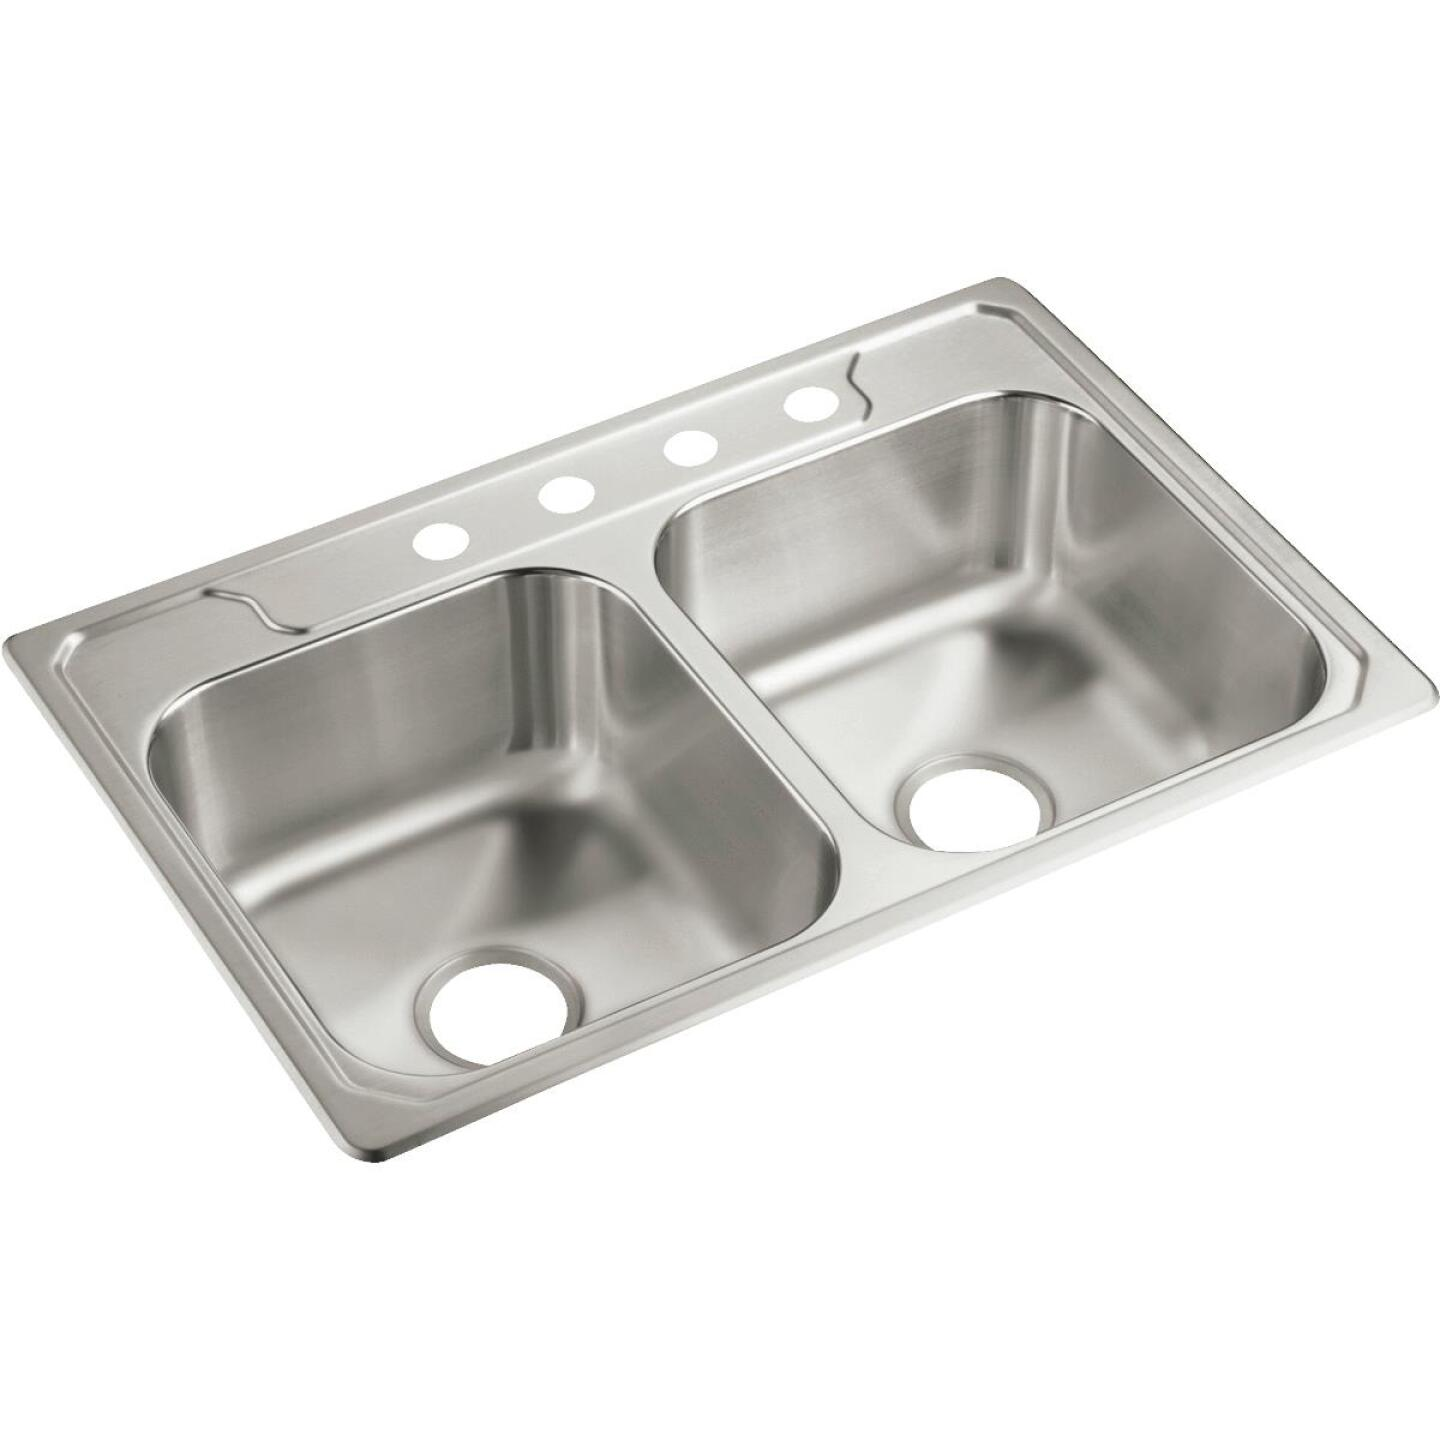 Sterling Middleton Double Bowl Sink 7 In. Deep Stainless Steel Image 1